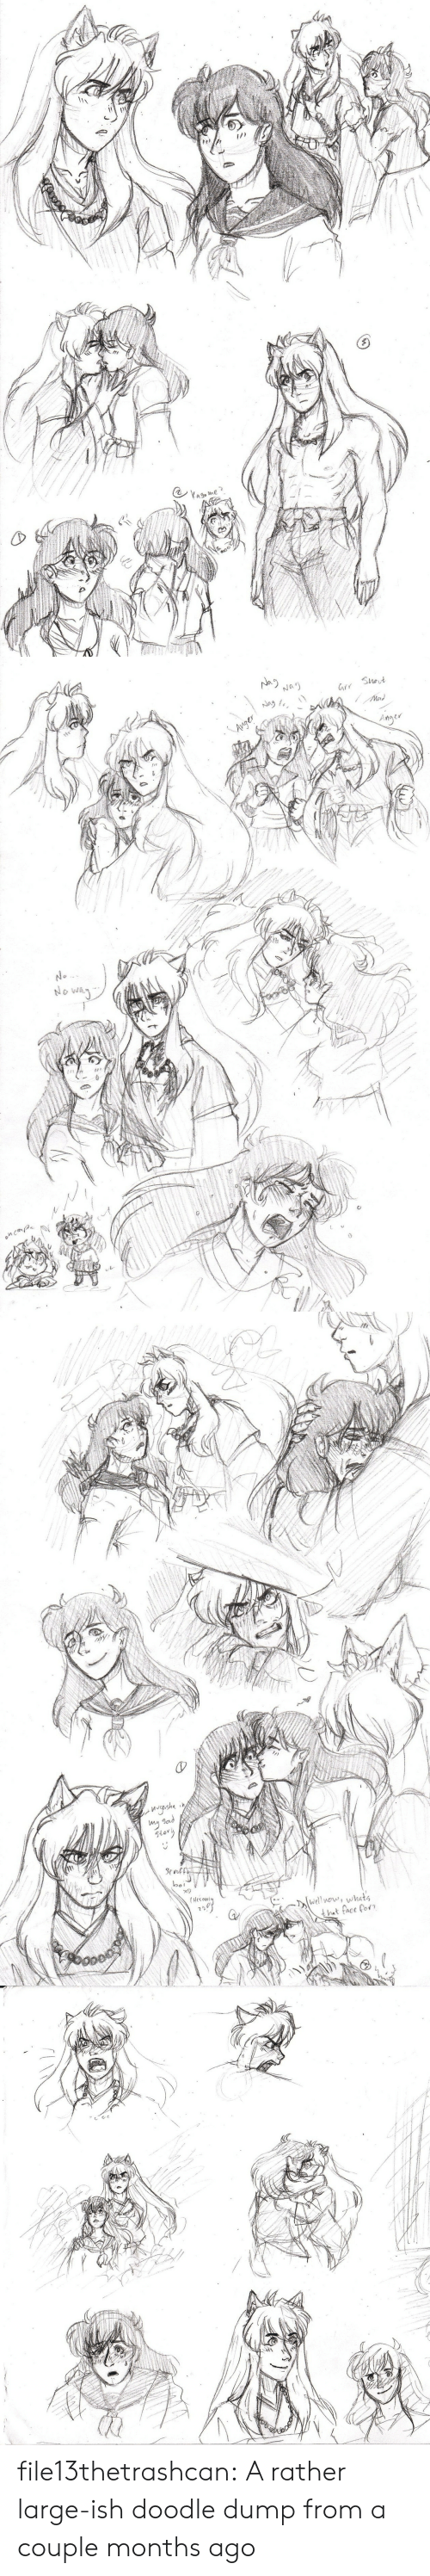 Target, Tumblr, and Blog: 1/)  me   Na2  Na'y  Nay  Mod  Auger  Anger  No  No  encm   mysad  5tory  boi  what's  wellwow  hat face for file13thetrashcan:  A rather large-ish doodle dump from a couple months ago